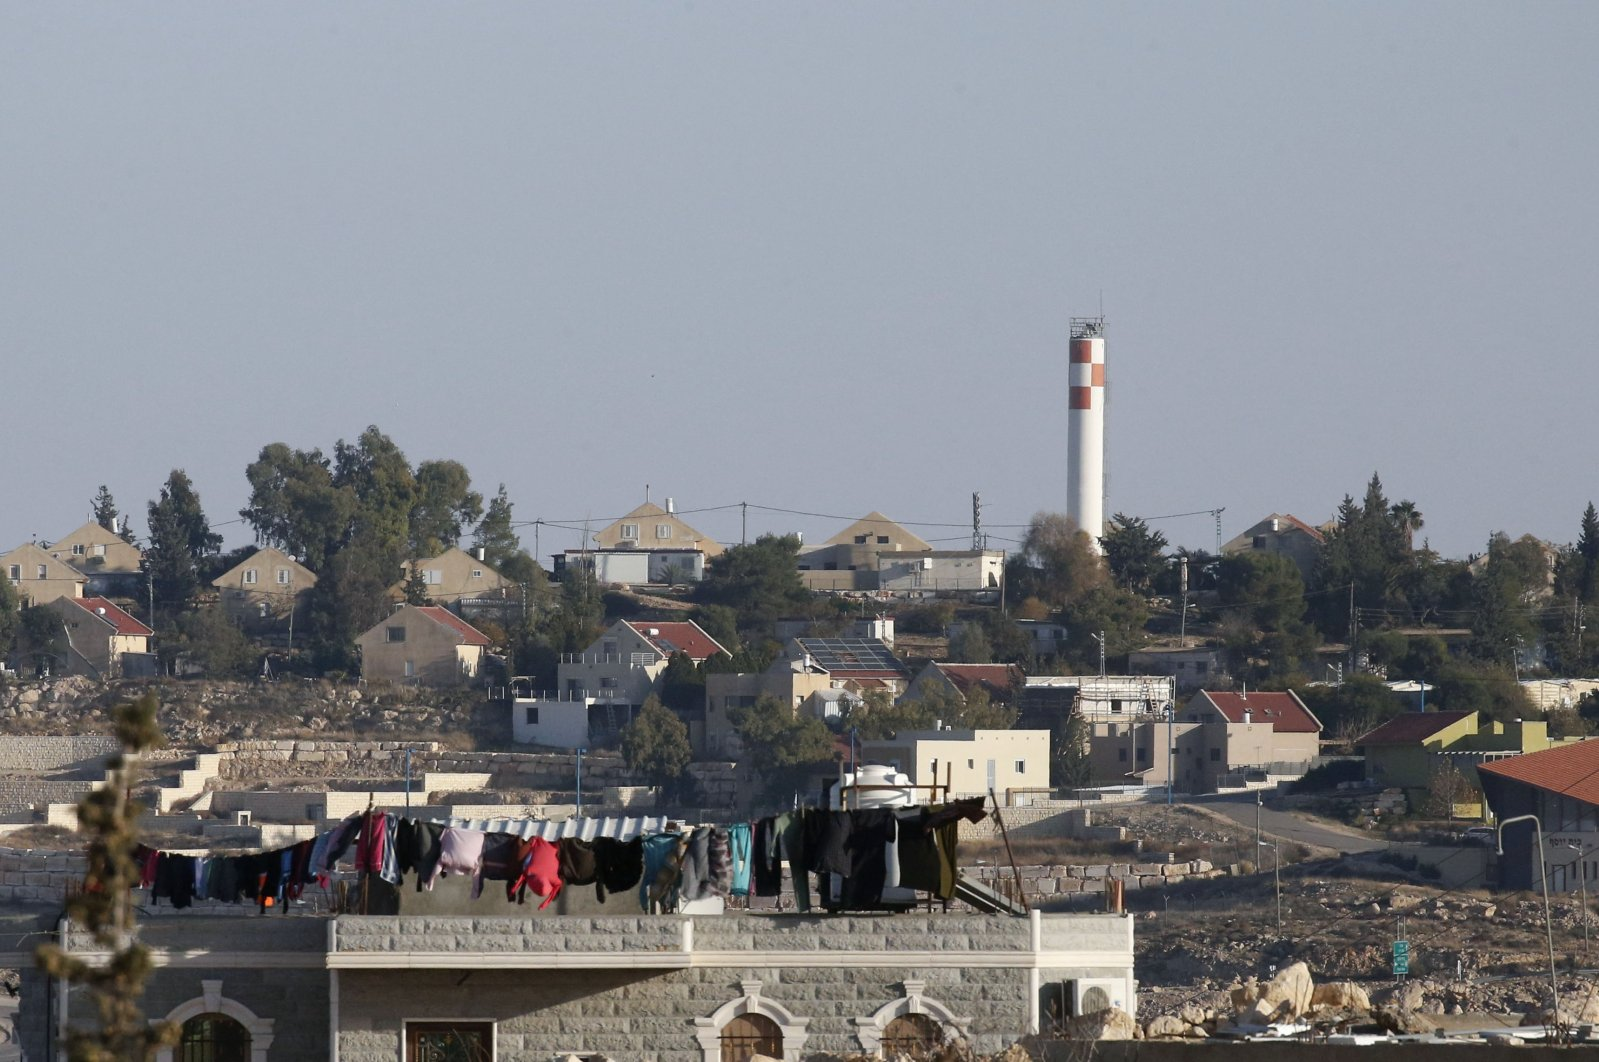 Clothes hang to dry on the roof of a house in the Palestinian village of al-Dirat near Yatta village, with a backdrop of the illegal Israeli settlement of Karmel in the southern area of Hebron city in the occupied West Bank, on Jan. 12, 2021. (AFP Photo)